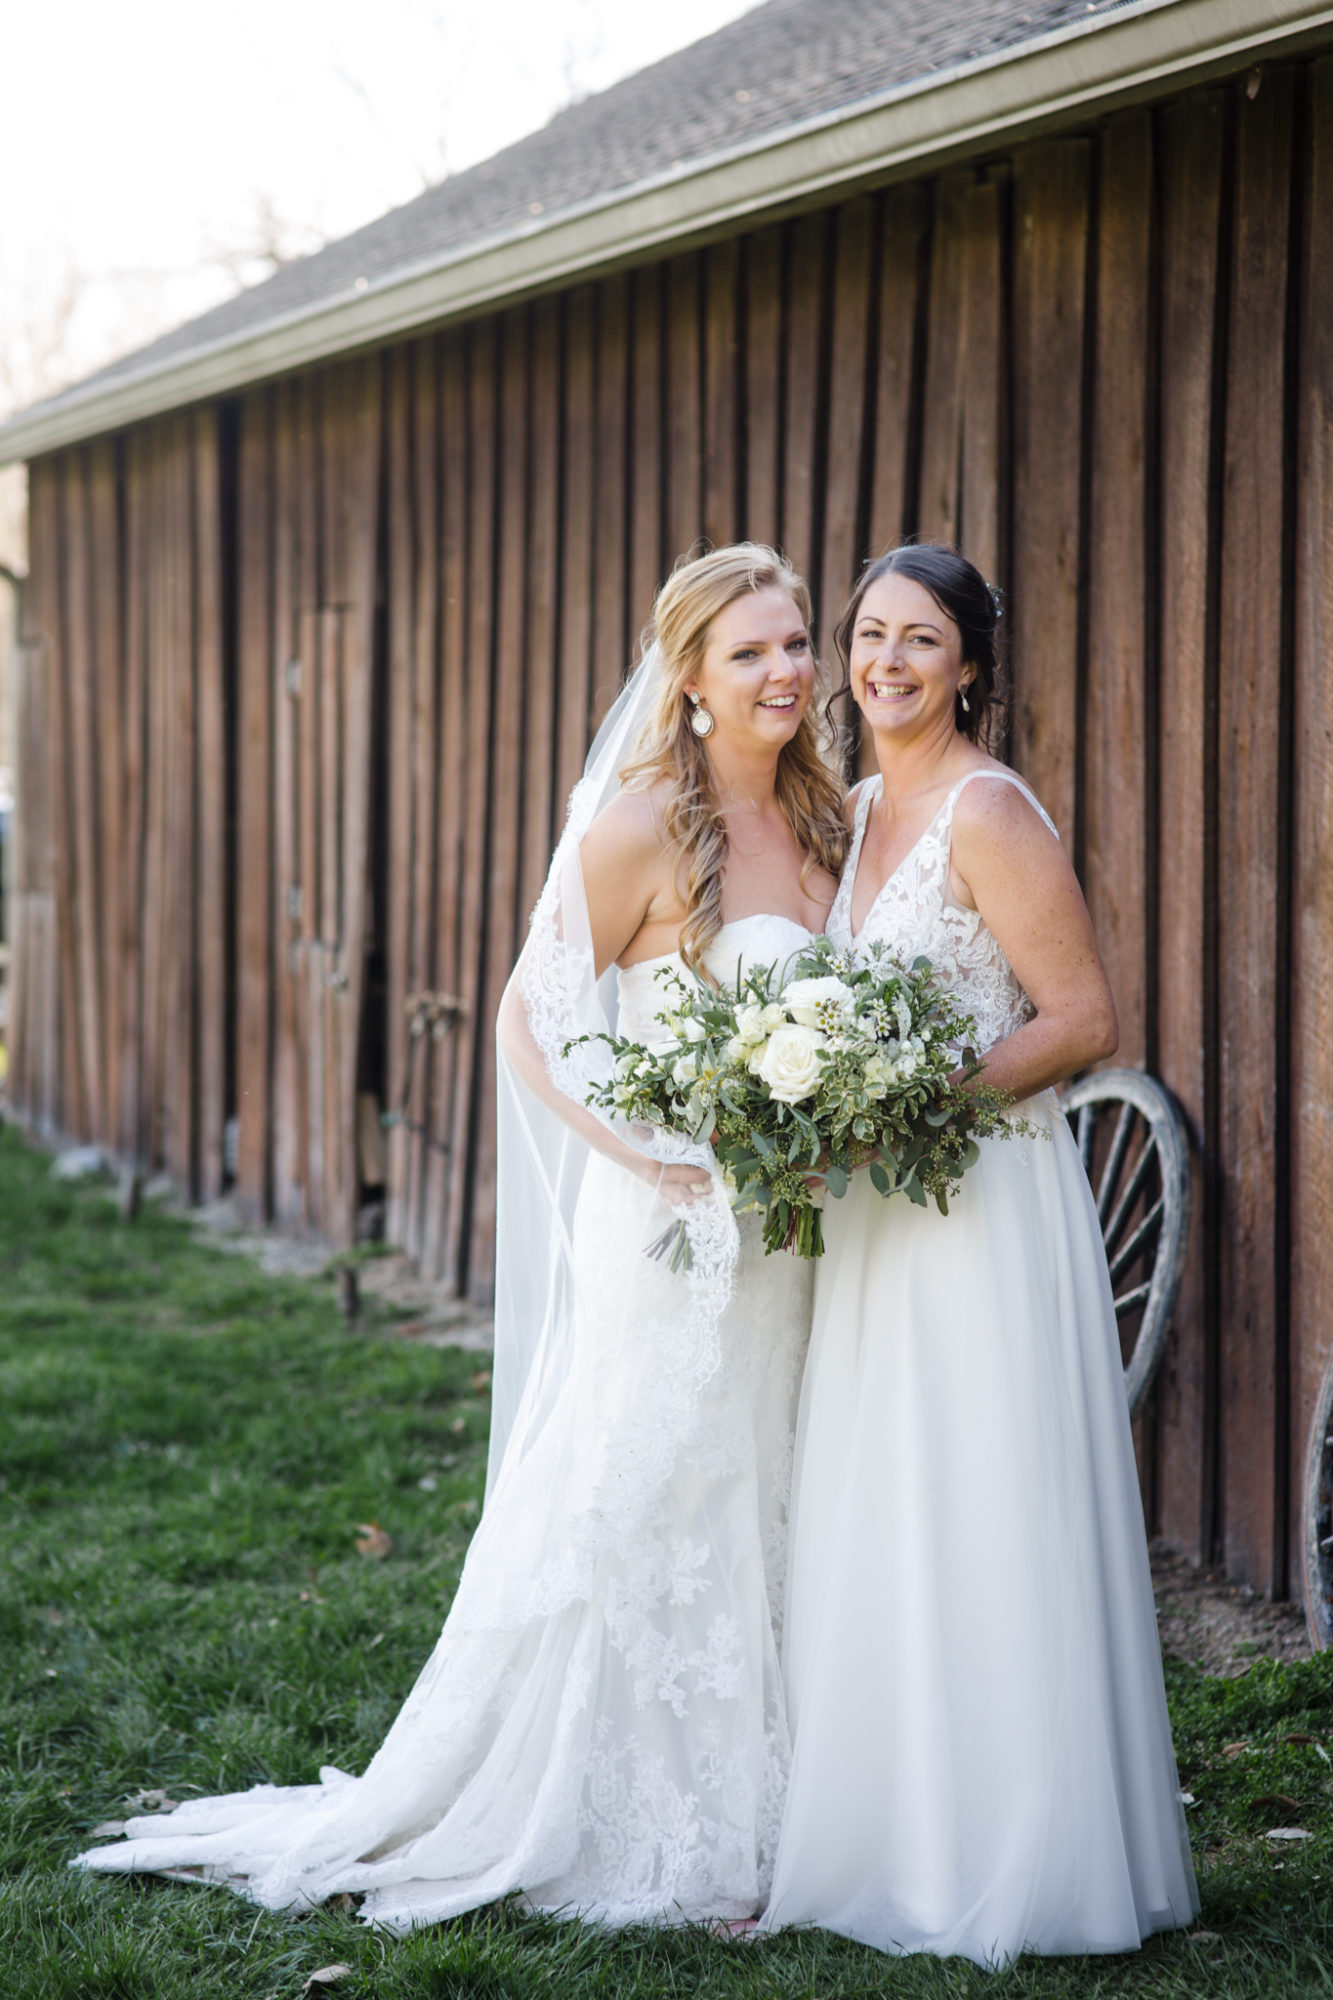 LGBT Lesbian Wedding The Barn in Zionsville Indiana